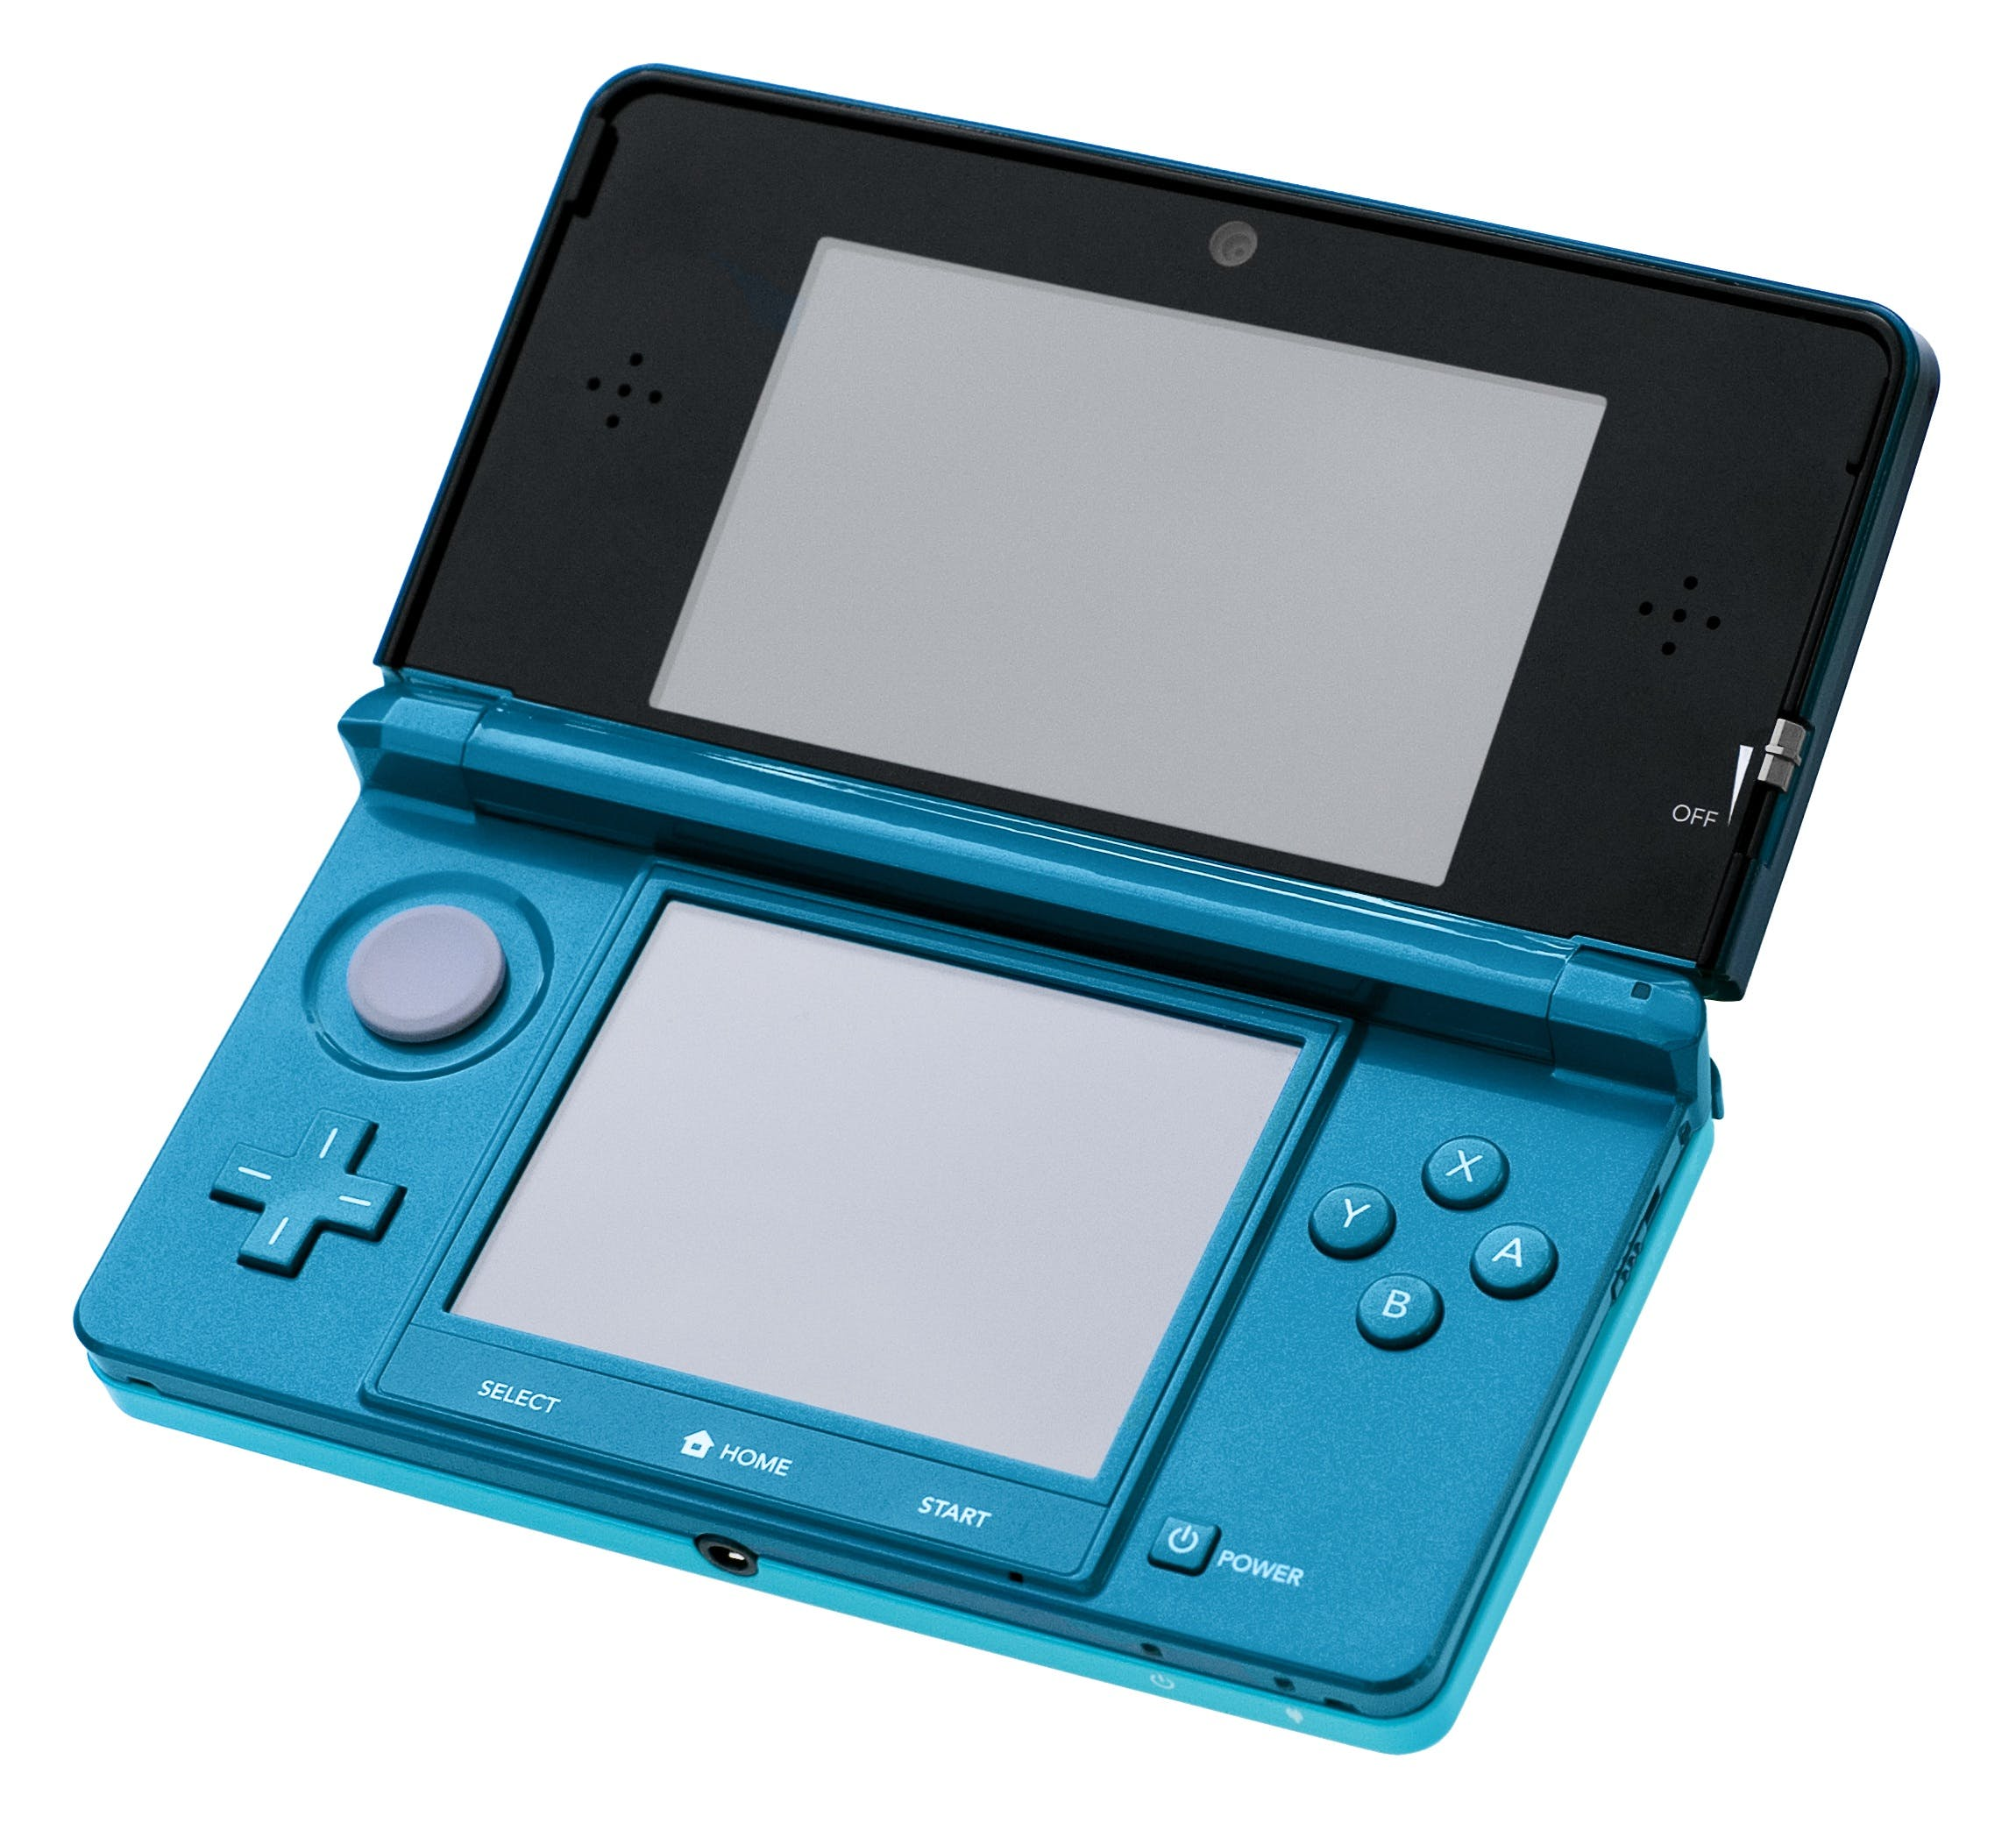 Blue and Black Nintendo Ds